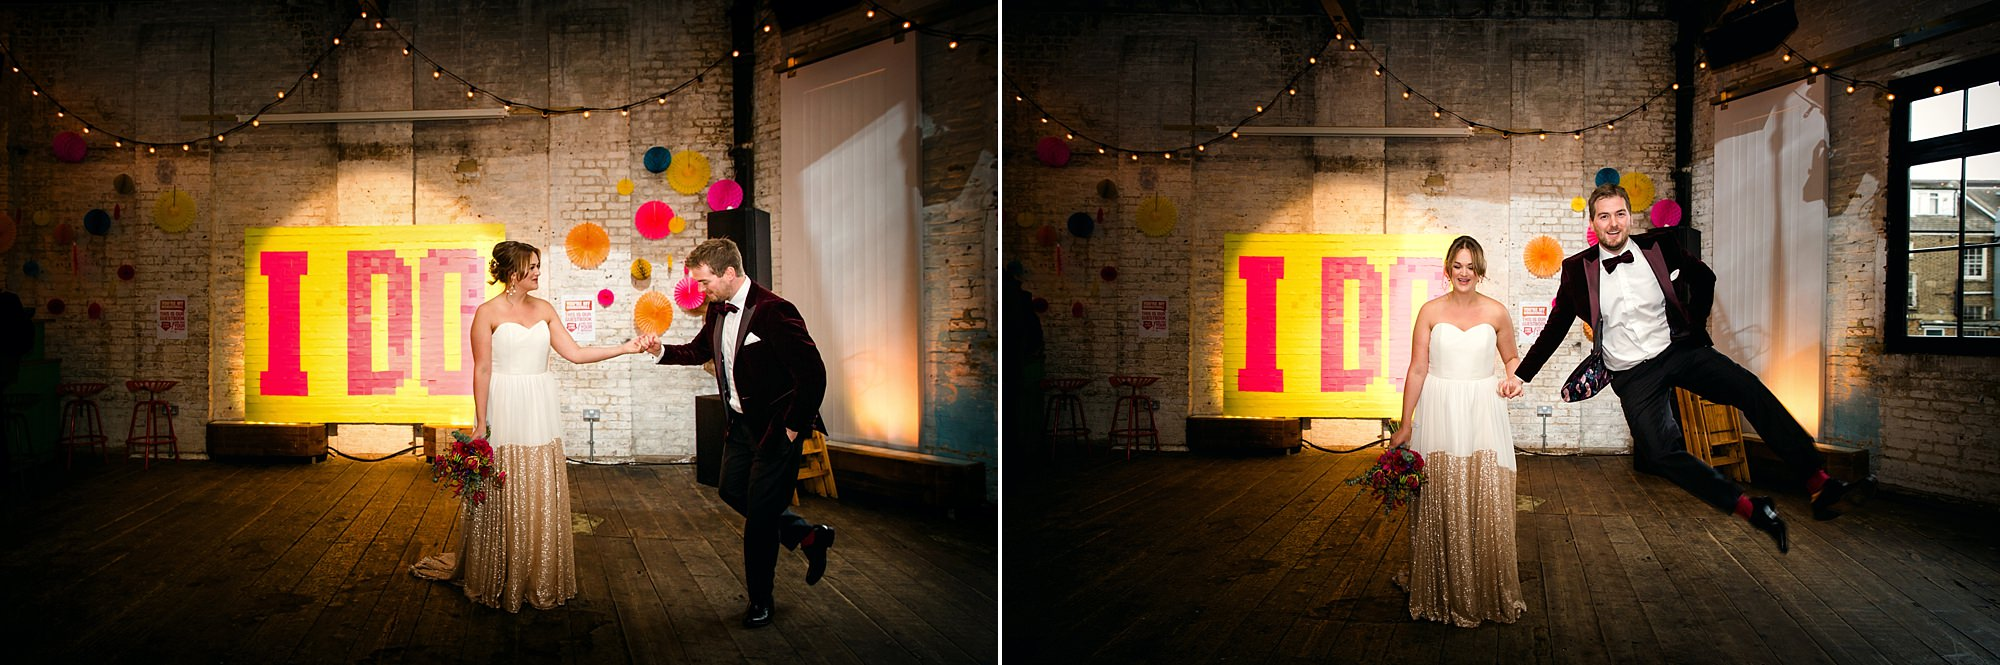 Fun London Wedding portrait of bride and groom dancing in front of giant post it note sign